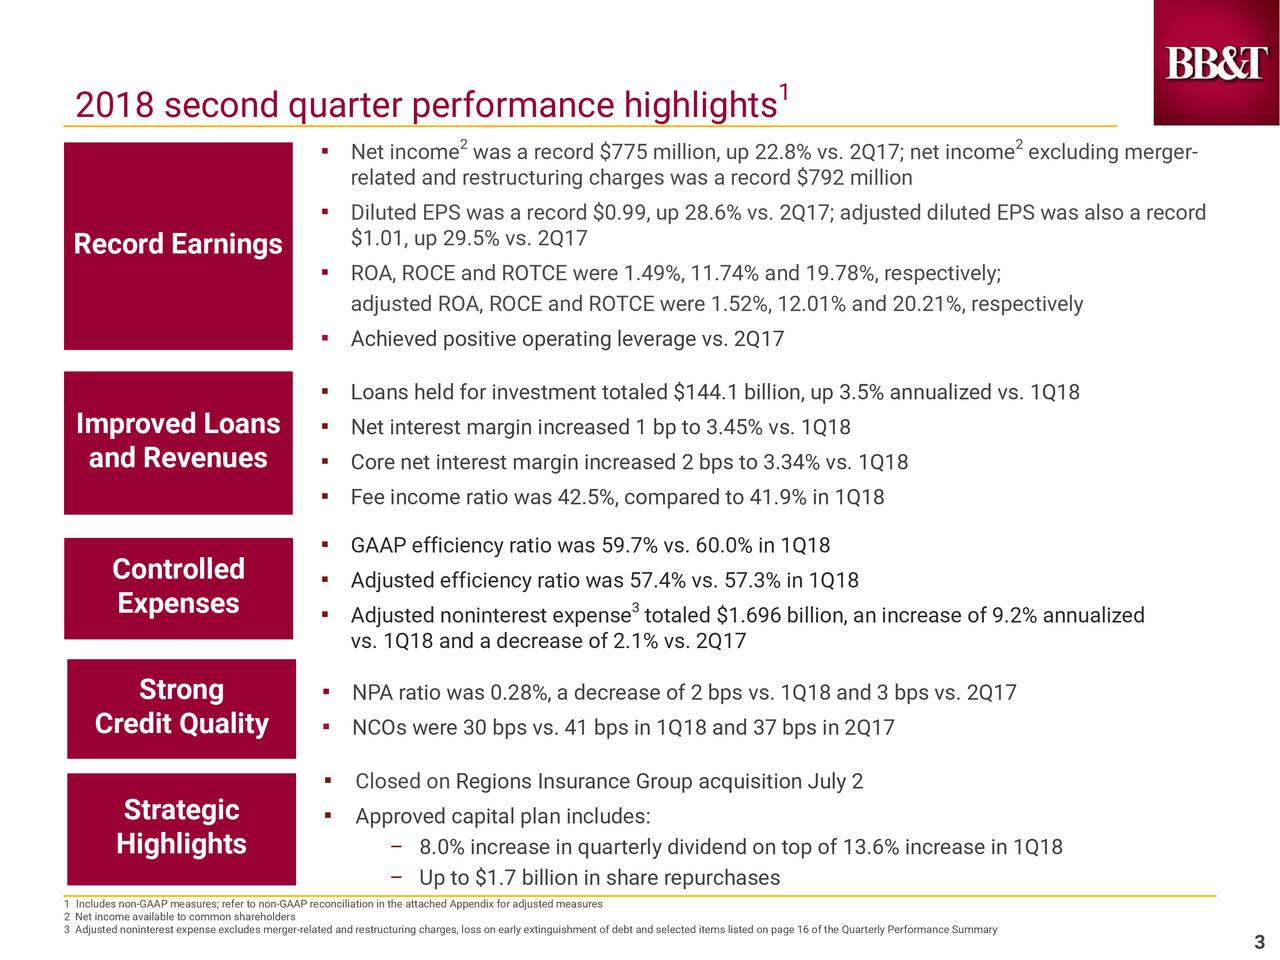 2018 second quarter performance highlights ▪ Net income was a record $775 million, up 22.8% vs. 2Q17; net income excluding merger- related and restructuring charges was a record $792 million ▪ Diluted EPS was a record $0.99, up 28.6% vs. 2Q17; adjusted diluted EPS was also a record Record Earnings $1.01, up 29.5% vs. 2Q17 ▪ ROA, ROCE and ROTCE were 1.49%, 11.74% and 19.78%, respectively; adjusted ROA, ROCE and ROTCE were 1.52%, 12.01% and 20.21%, respectively ▪ Achieved positive operating leverage vs. 2Q17 ▪ Loans held for investment totaled $144.1 billion, up 3.5% annualized vs. 1Q18 Improved Loans ▪ Net interest margin increased 1 bp to 3.45% vs. 1Q18 and Revenues ▪ Core net interest margin increased 2 bps to 3.34% vs. 1Q18 ▪ Fee income ratio was 42.5%, compared to 41.9% in 1Q18 ▪ GAAP efficiency ratio was 59.7% vs. 60.0% in 1Q18 Controlled ▪ Adjusted efficiency ratio was 57.4% vs. 57.3% in 1Q18 Expenses ▪ Adjusted noninterest expense totaled $1.696 billion, an increase of 9.2% annualized vs. 1Q18 and a decrease of 2.1% vs. 2Q17 Strong ▪ NPA ratio was 0.28%, a decrease of 2 bps vs. 1Q18 and 3 bps vs. 2Q17 Credit Quality ▪ NCOs were 30 bps vs. 41 bps in 1Q18 and 37 bps in 2Q17 ▪ Closed on Regions Insurance Group acquisition July 2 Strategic ▪ Approved capital plan includes: Highlights – 8.0% increase in quarterly dividend on top of 13.6% increase in 1Q18 – Up to $1.7 billion in share repurchases 2 Net income available to common shareholdersAP reconciliation in the attached Appendix for adjusted measures 3 Adjusted noninterest expense excludes merger-related and restructuring charges, loss on early extinguishment of debt and selected items listed on page 16 of the Quarterly Performance Summary